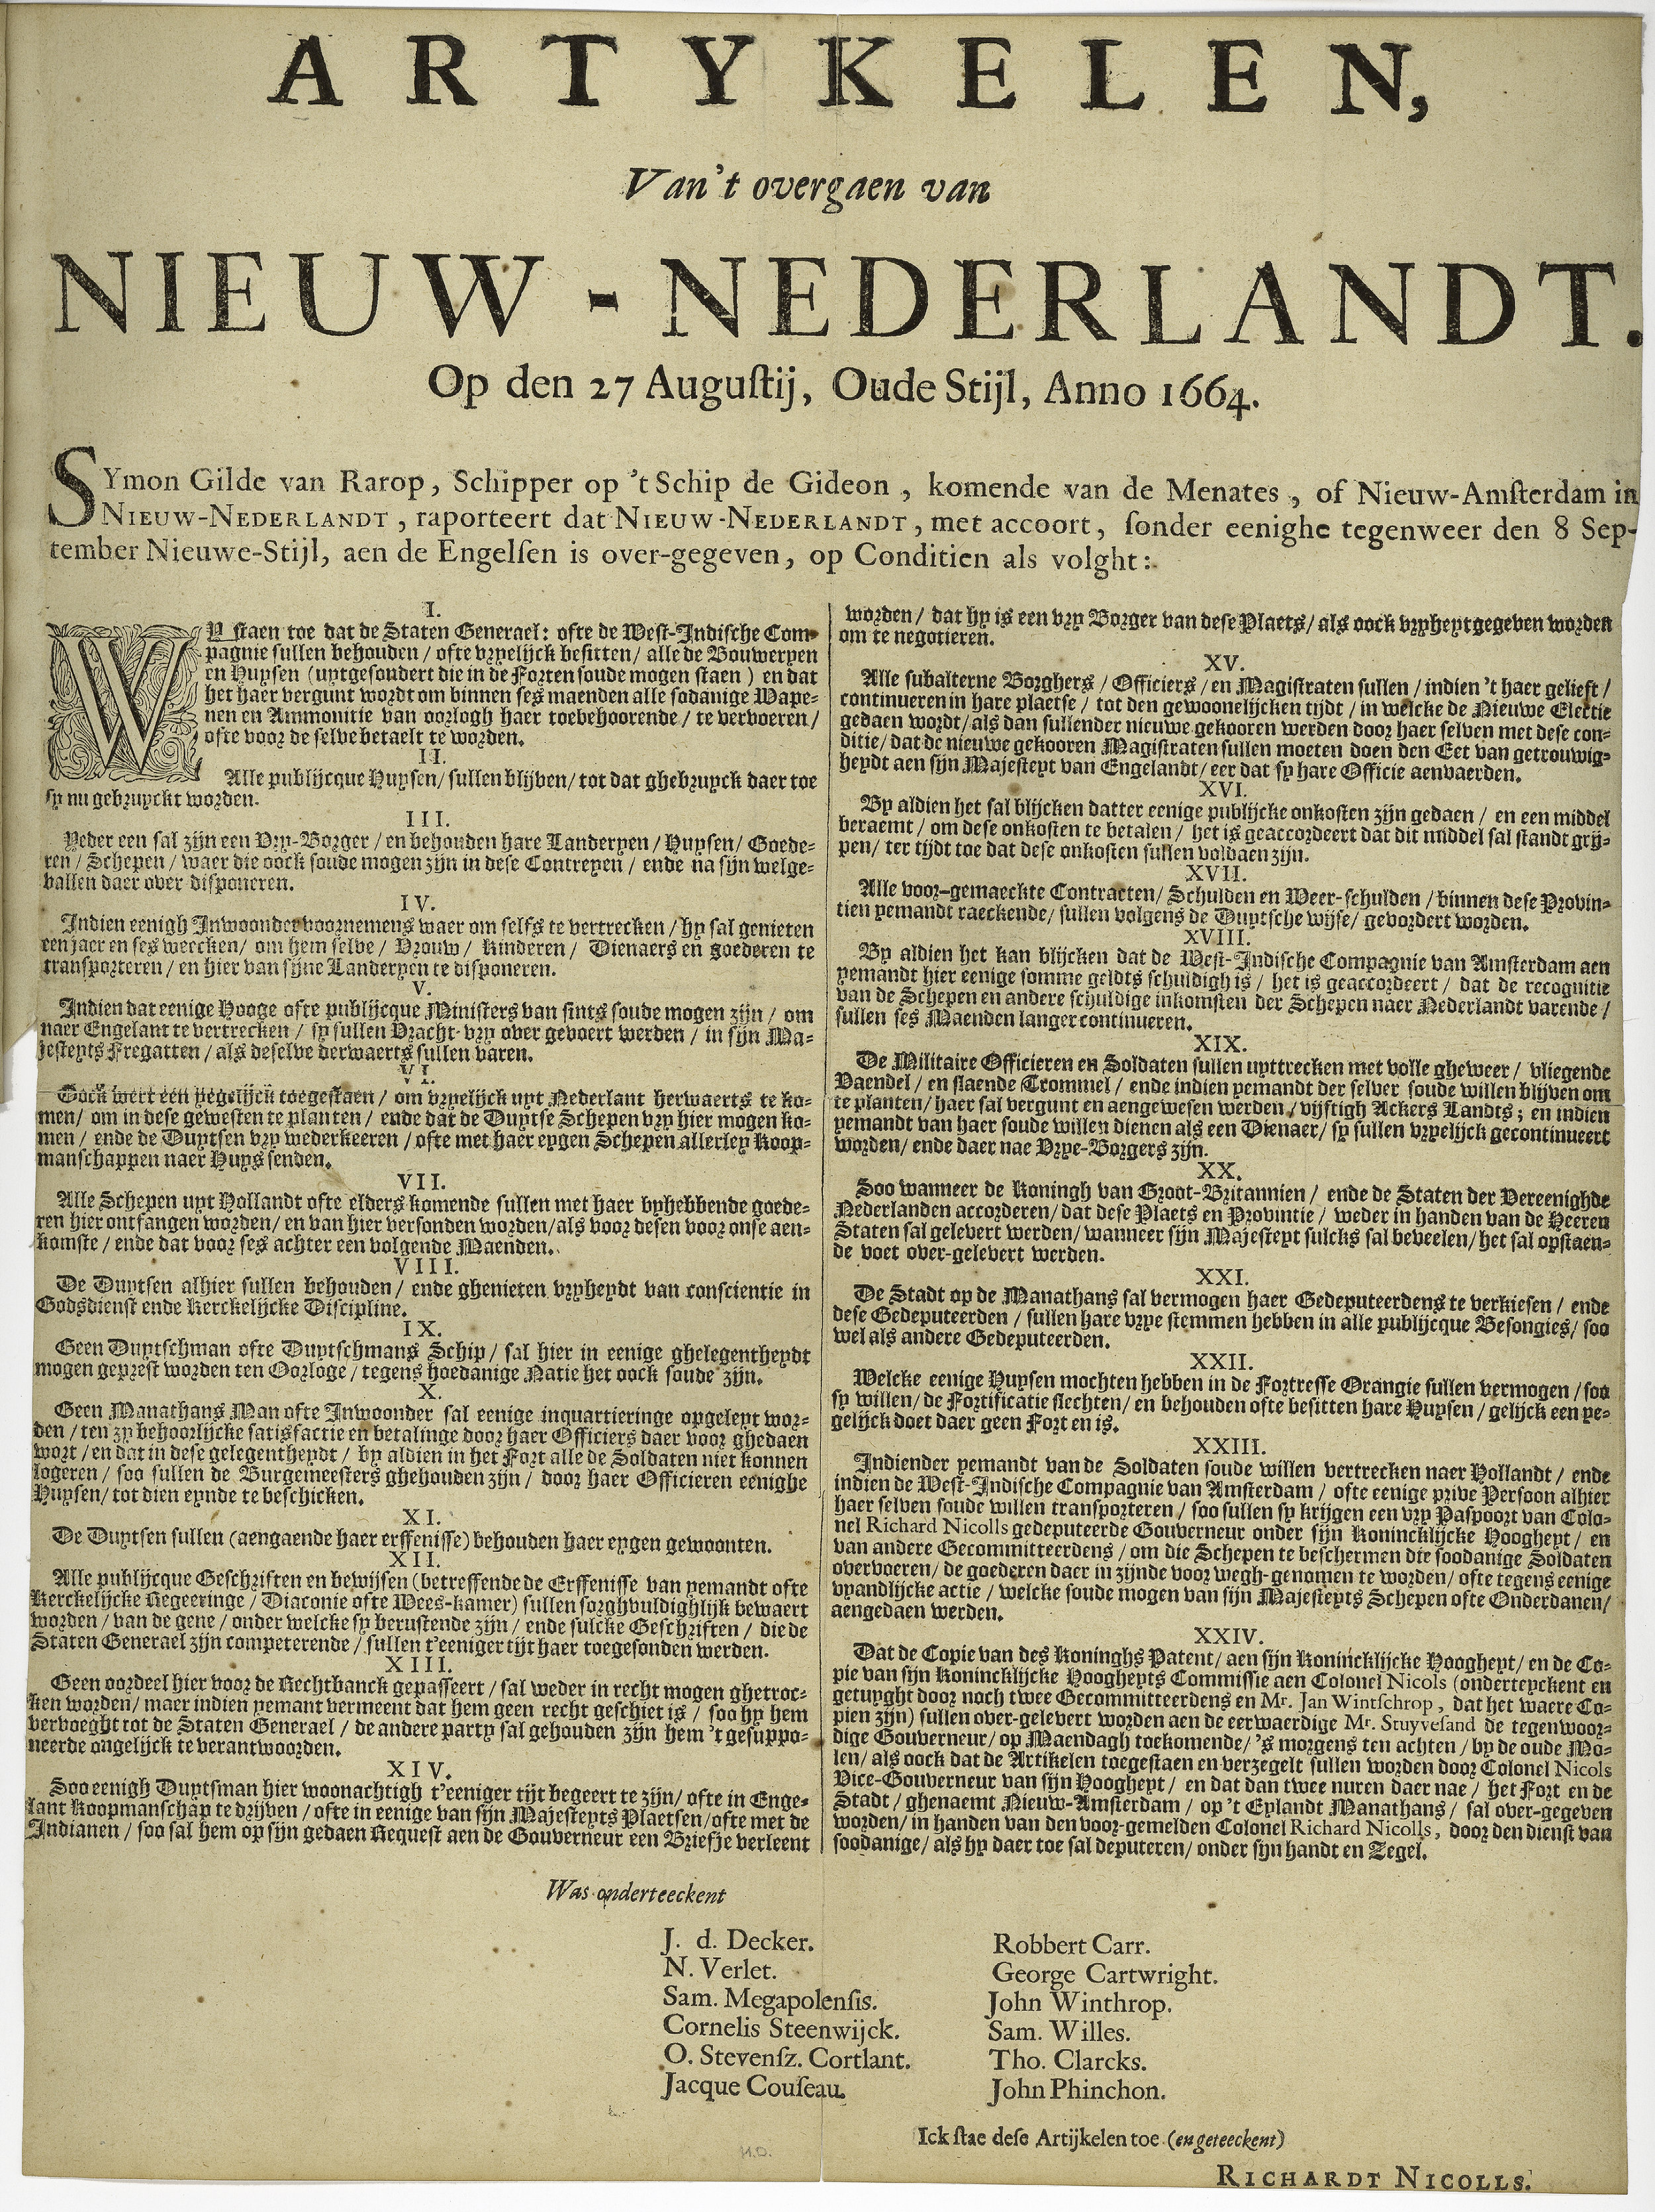 """Articles about the transfer of New Netherland on the 27th of August, Old Style, Anno 1664 .The articles were agreed to on September 8th, by six deputies commissioned by Director-general Stuyvesant and his council, and seven English commissioners, including Admiral Richard Nicolls. They are commonly called the articles of capitulation and Nicolls described them as the """"Articles, Whereupon the Citty and Fort Amsterdam and the Province of the New Netherlands Were Surrendered,""""but this broadside, probably printed in Holland, used the word """"Overgaen"""" meaning transfer.Courtesy the  New York Public Library ."""